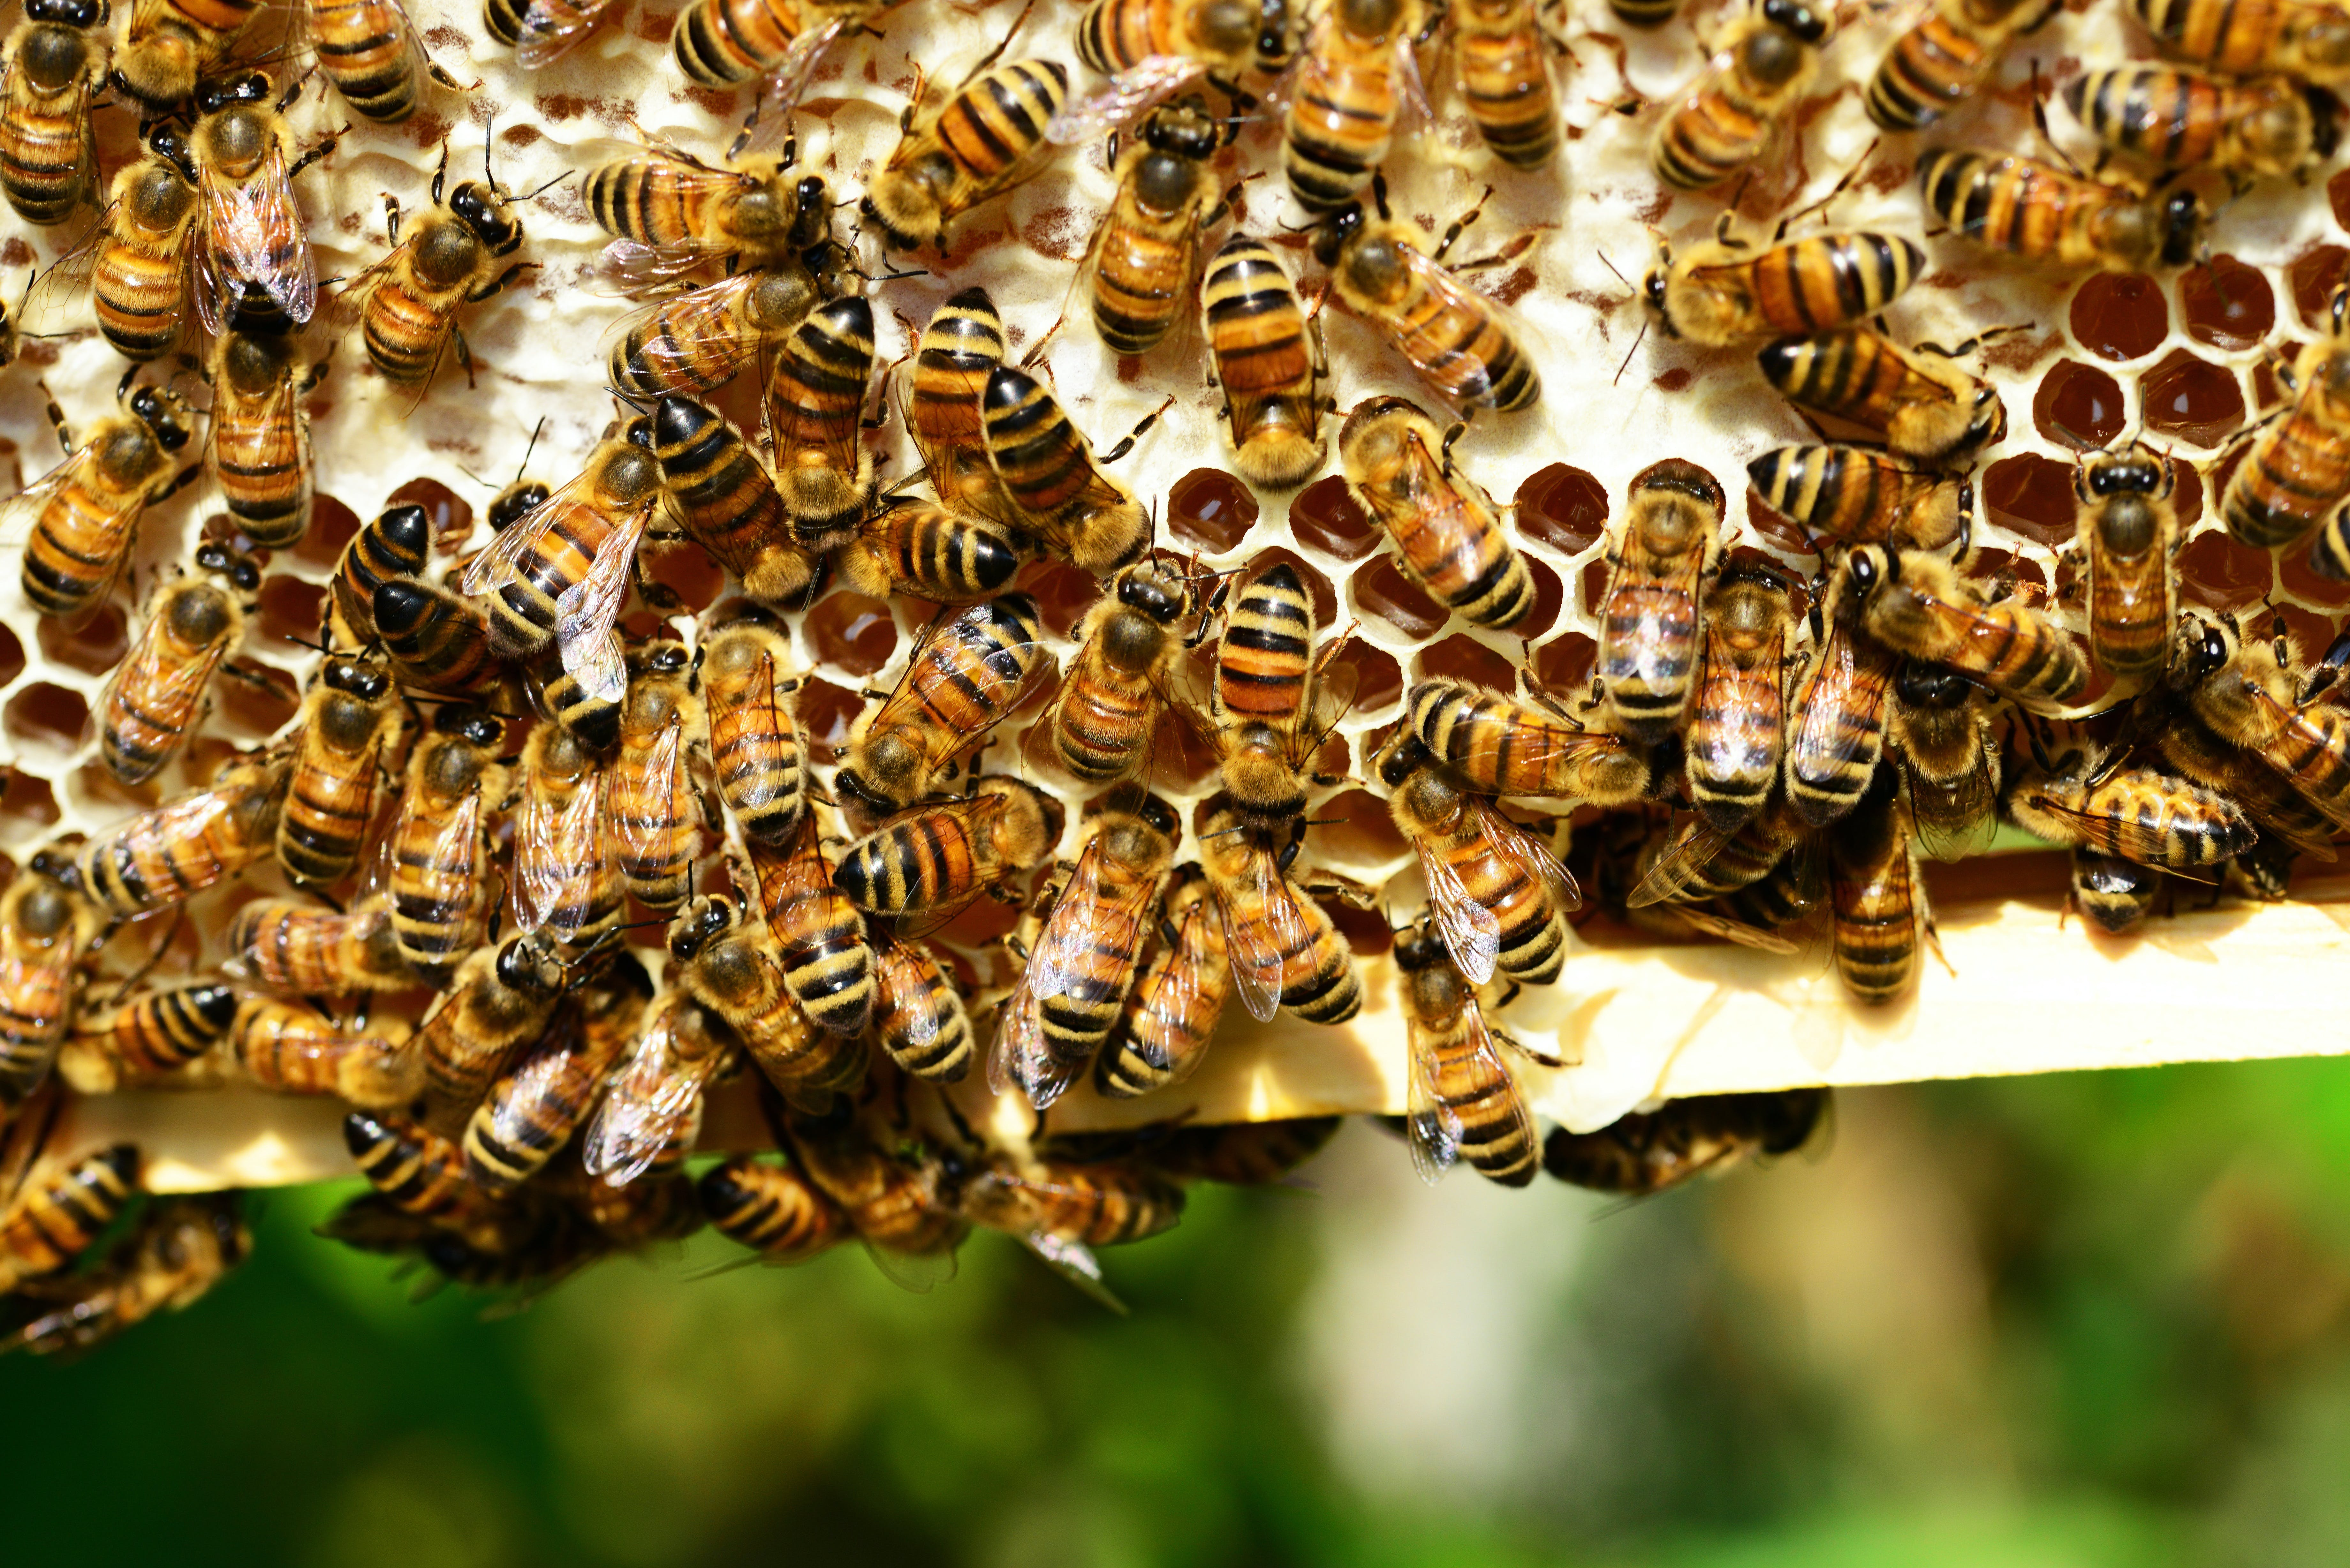 beehive, bees, close-up